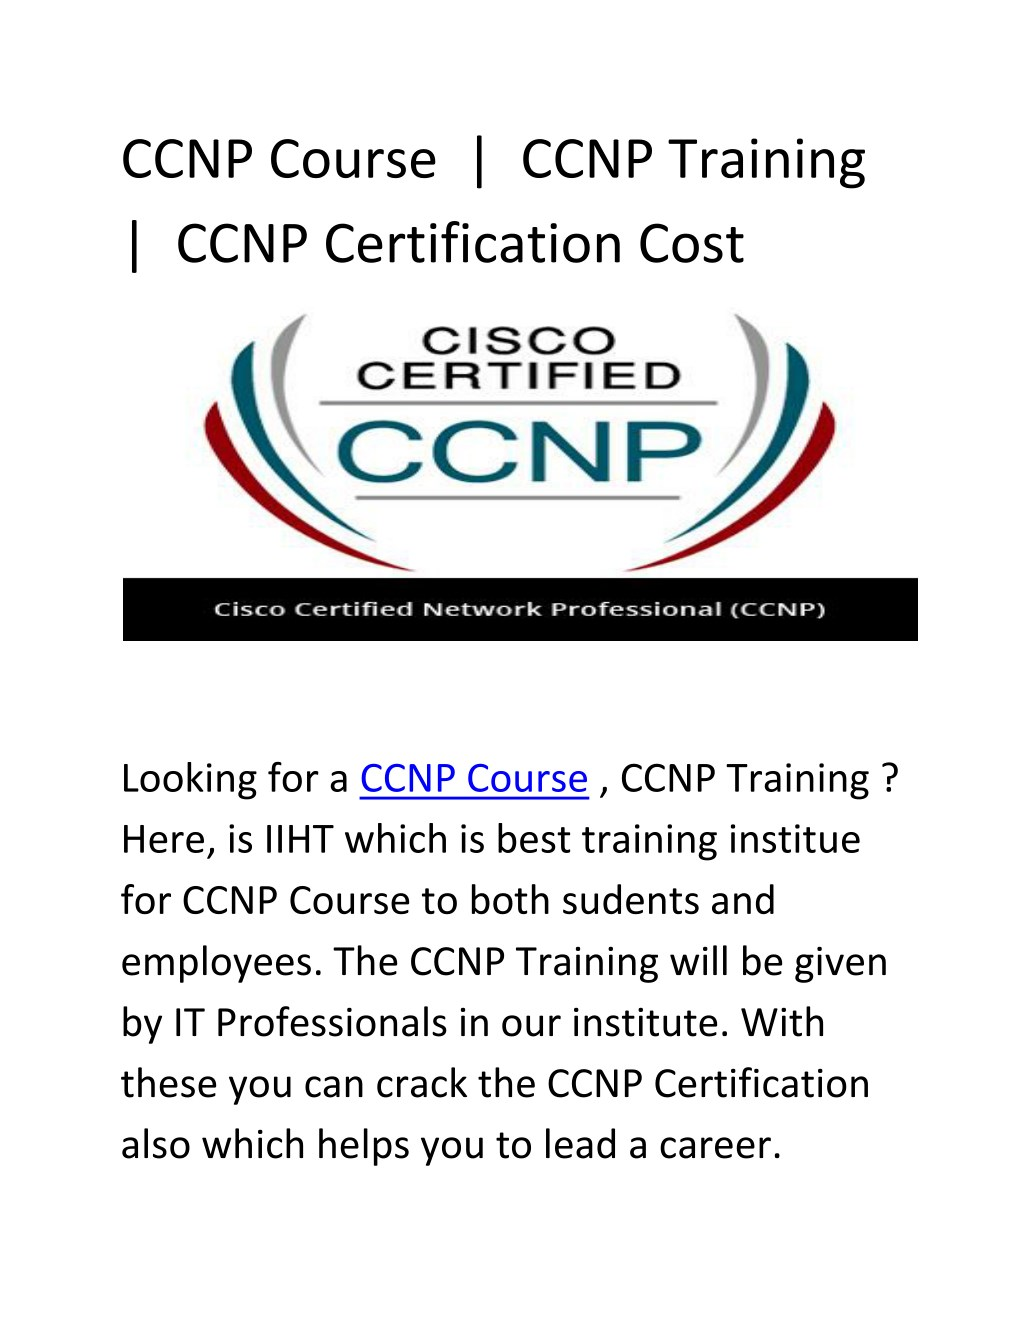 Ppt Ccnp Certification Cost Ccnp Course Ccnp Training